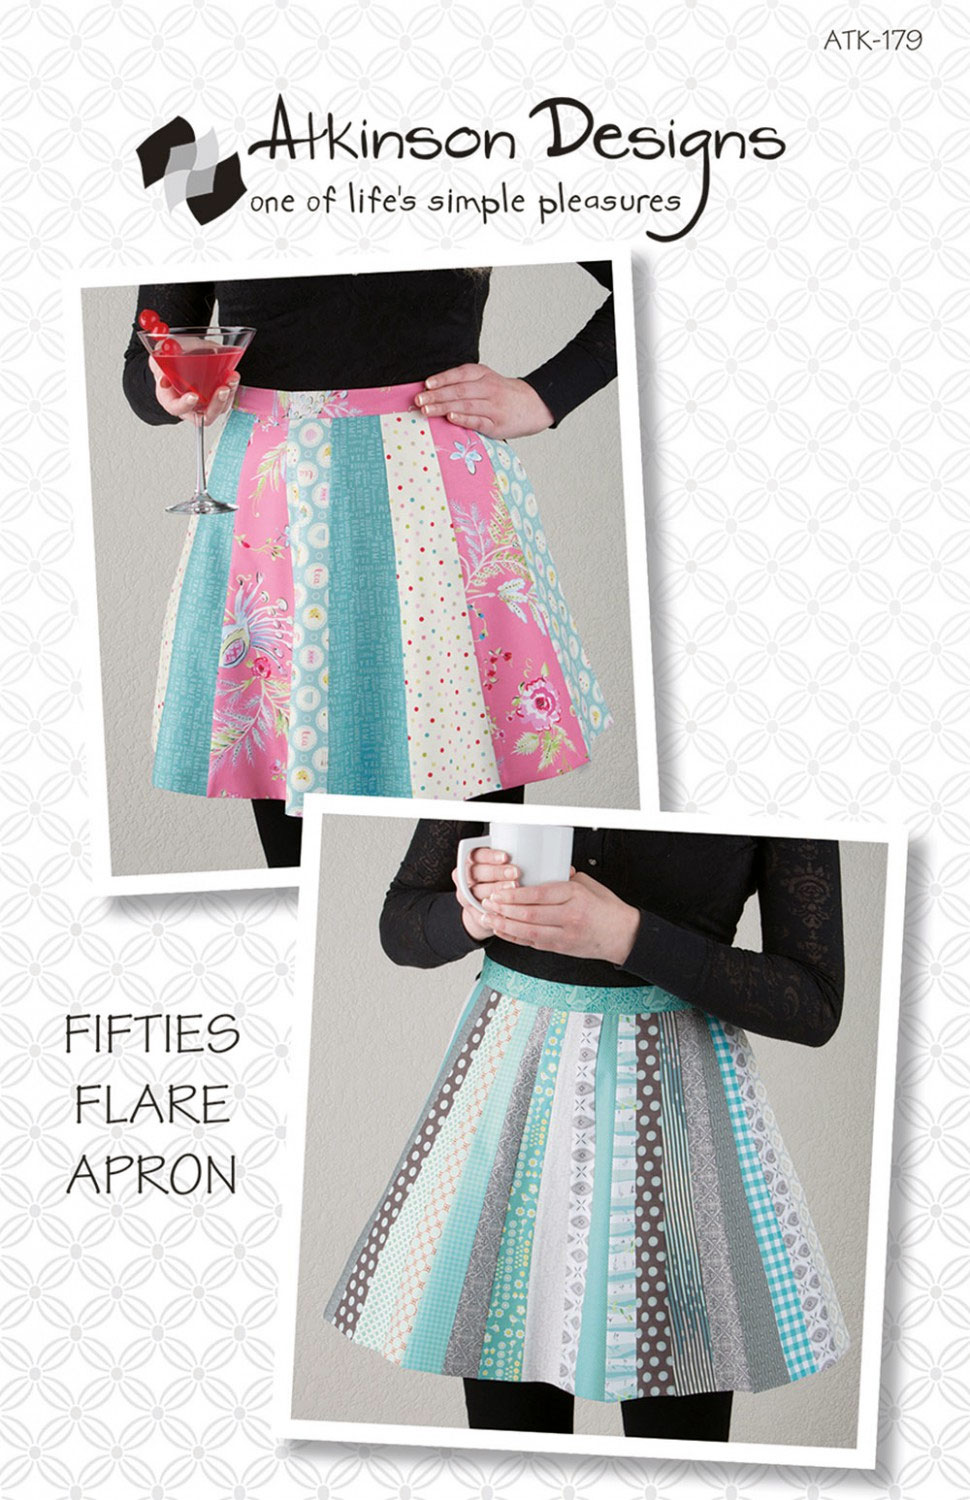 Fifties-Flare-sewing-pattern-Atkinson-Designs-front